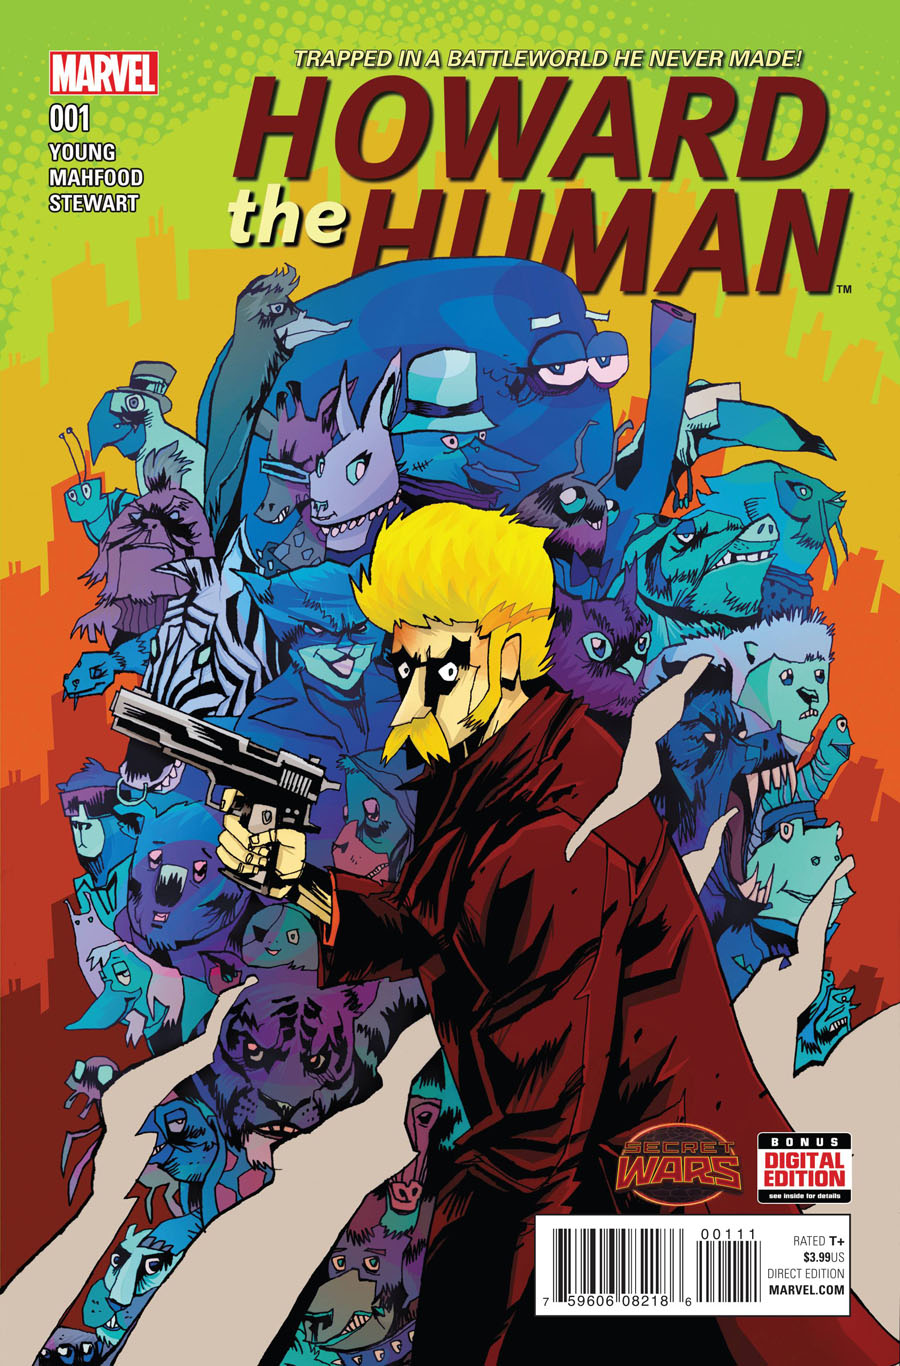 Howard The Human #1 Cover A Regular Jim Mahfood Cover (Secret Wars Warzones Tie-In)